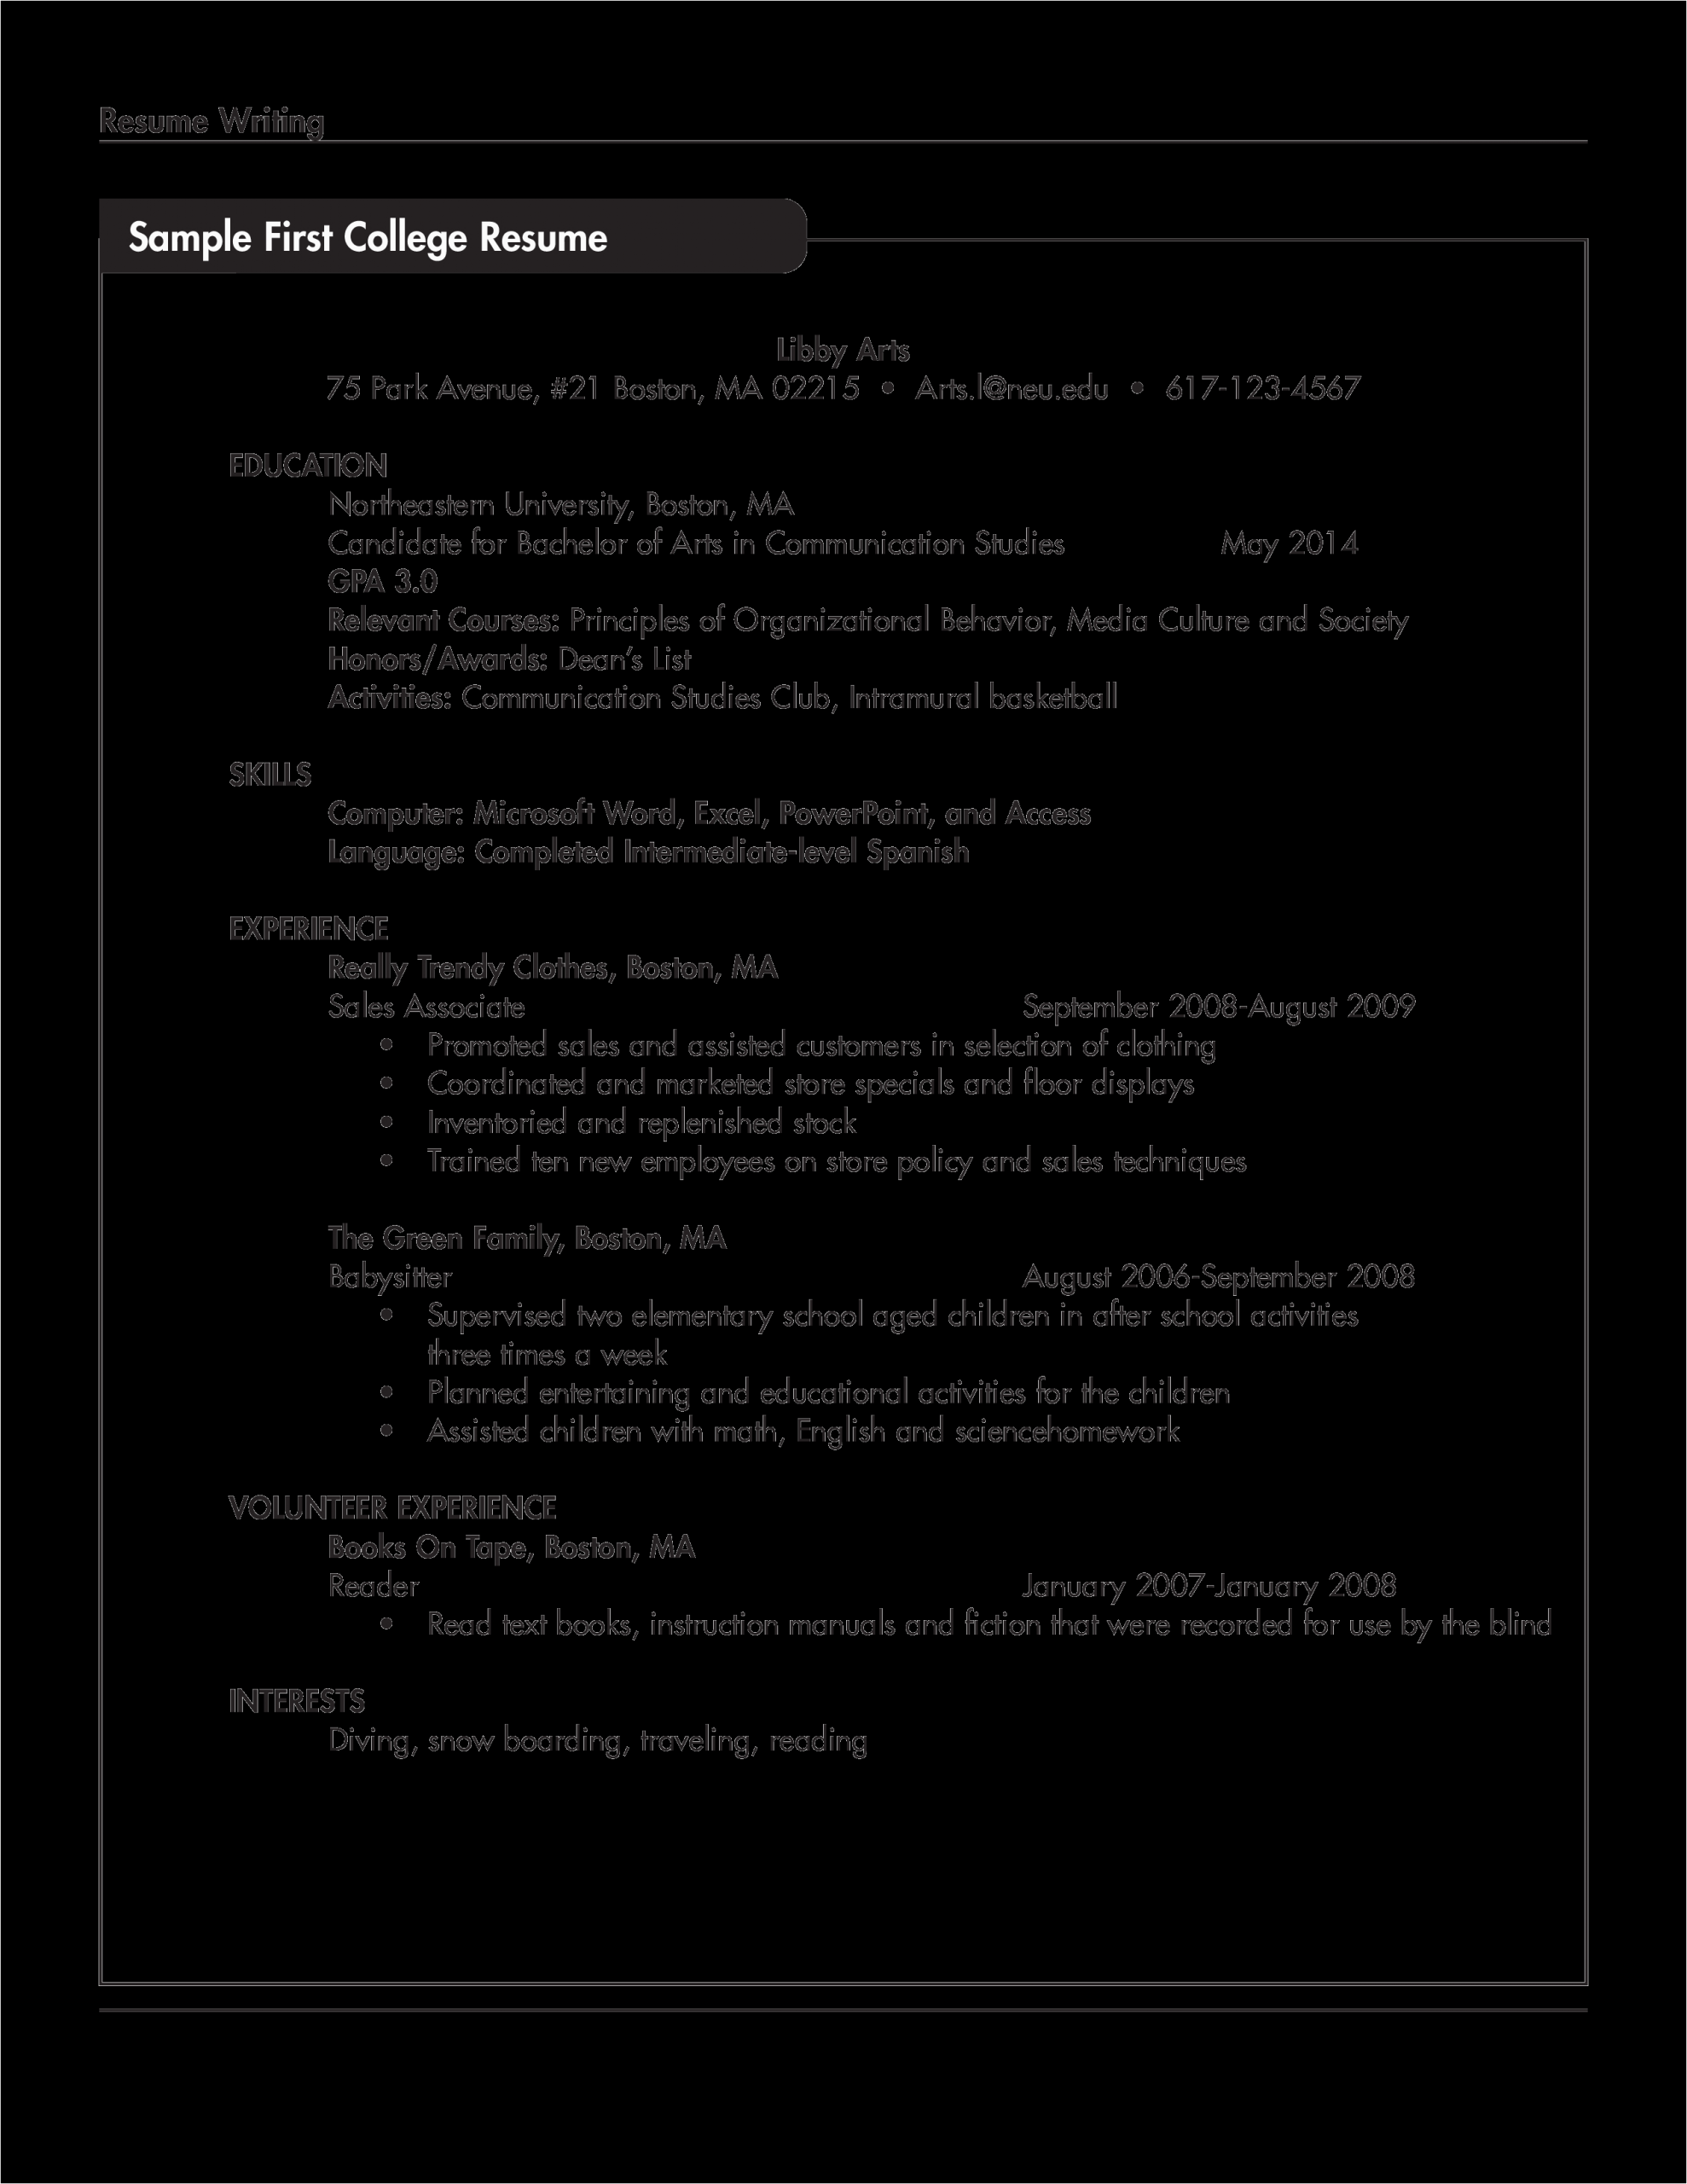 Resume Sample for someone with No Work Experience 免费 Sample Resume for College Student with No Work